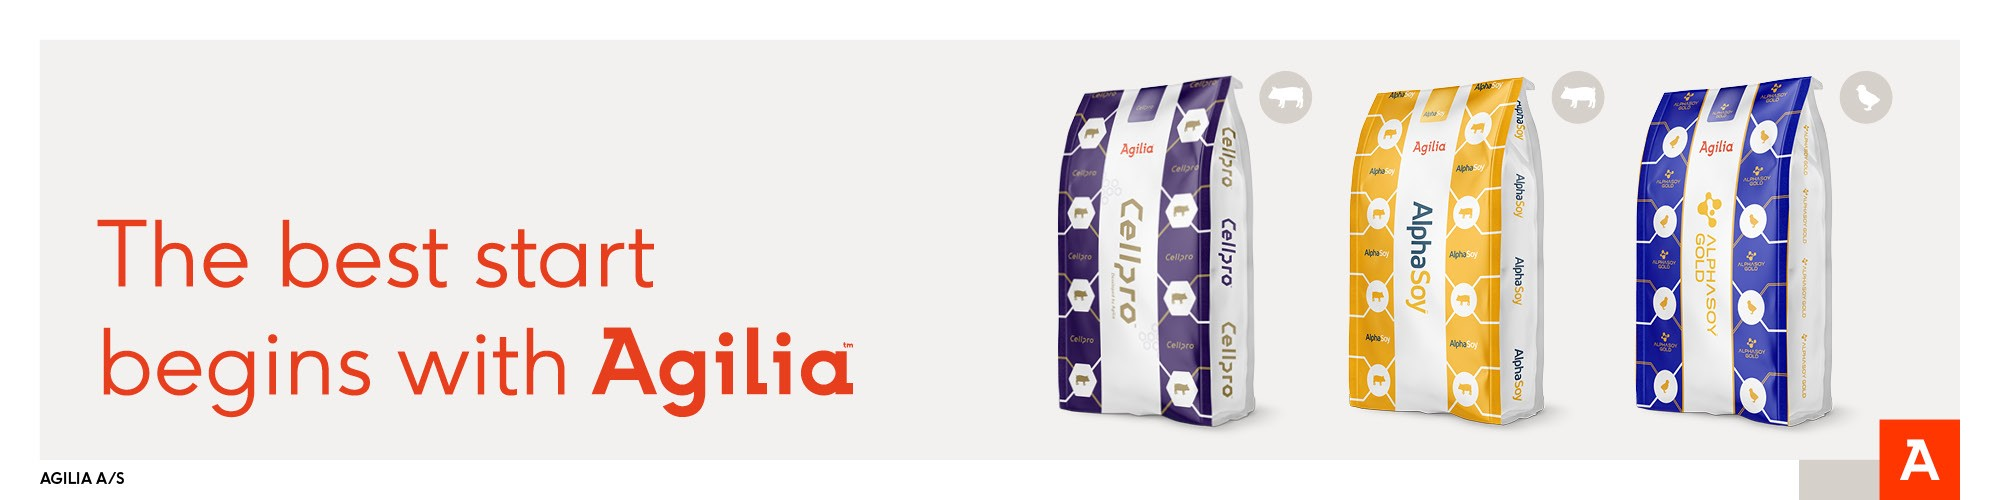 Brands from Agilia